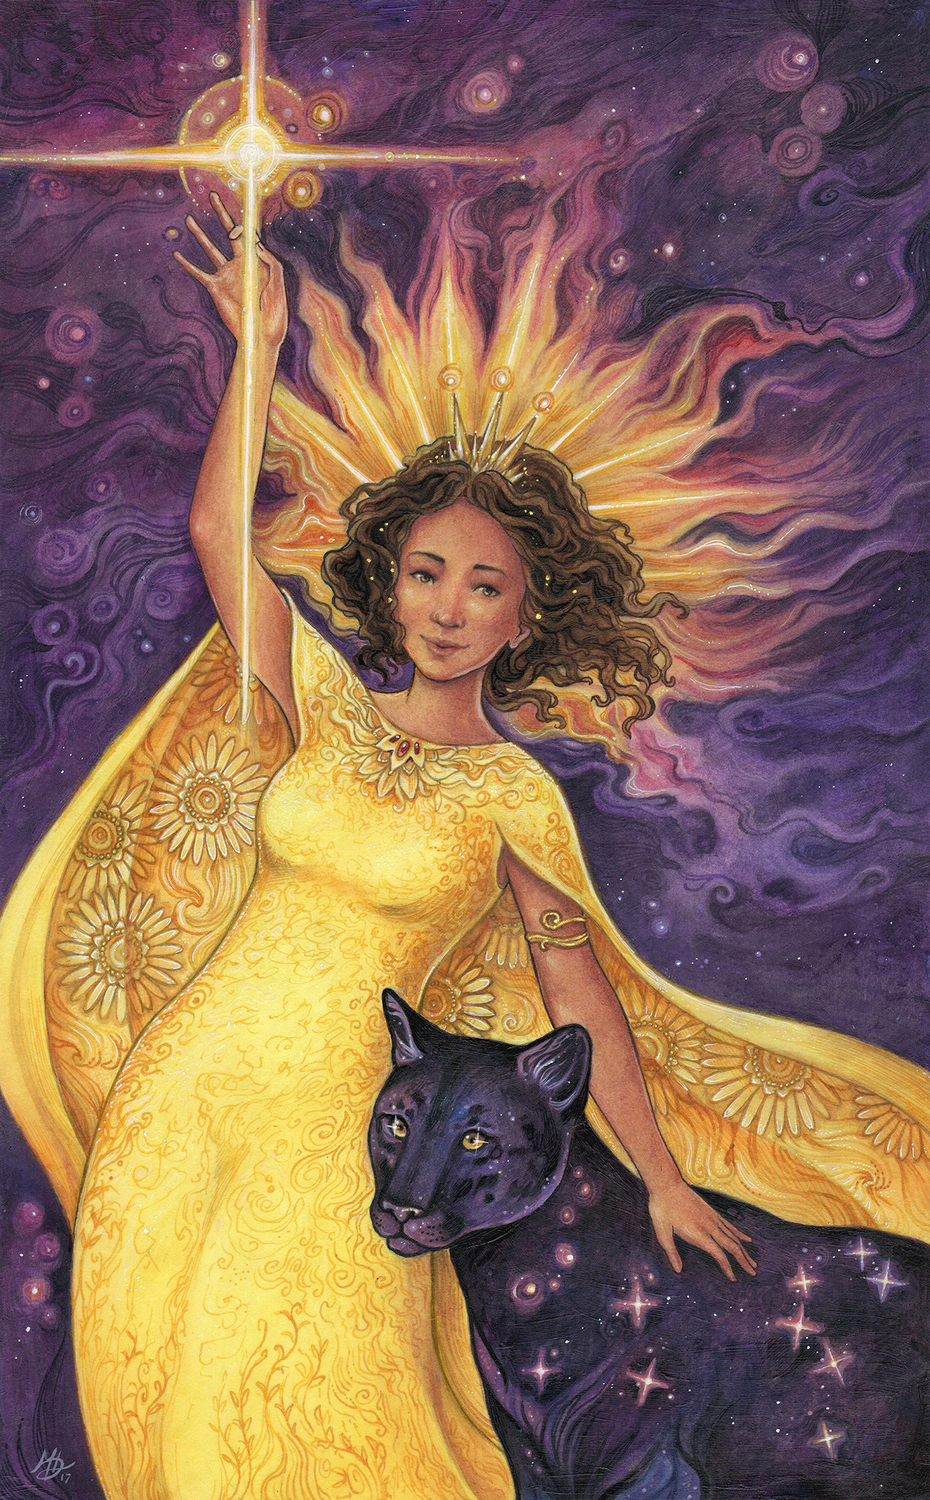 Queen of Wands Artwork by Meredith Dillman